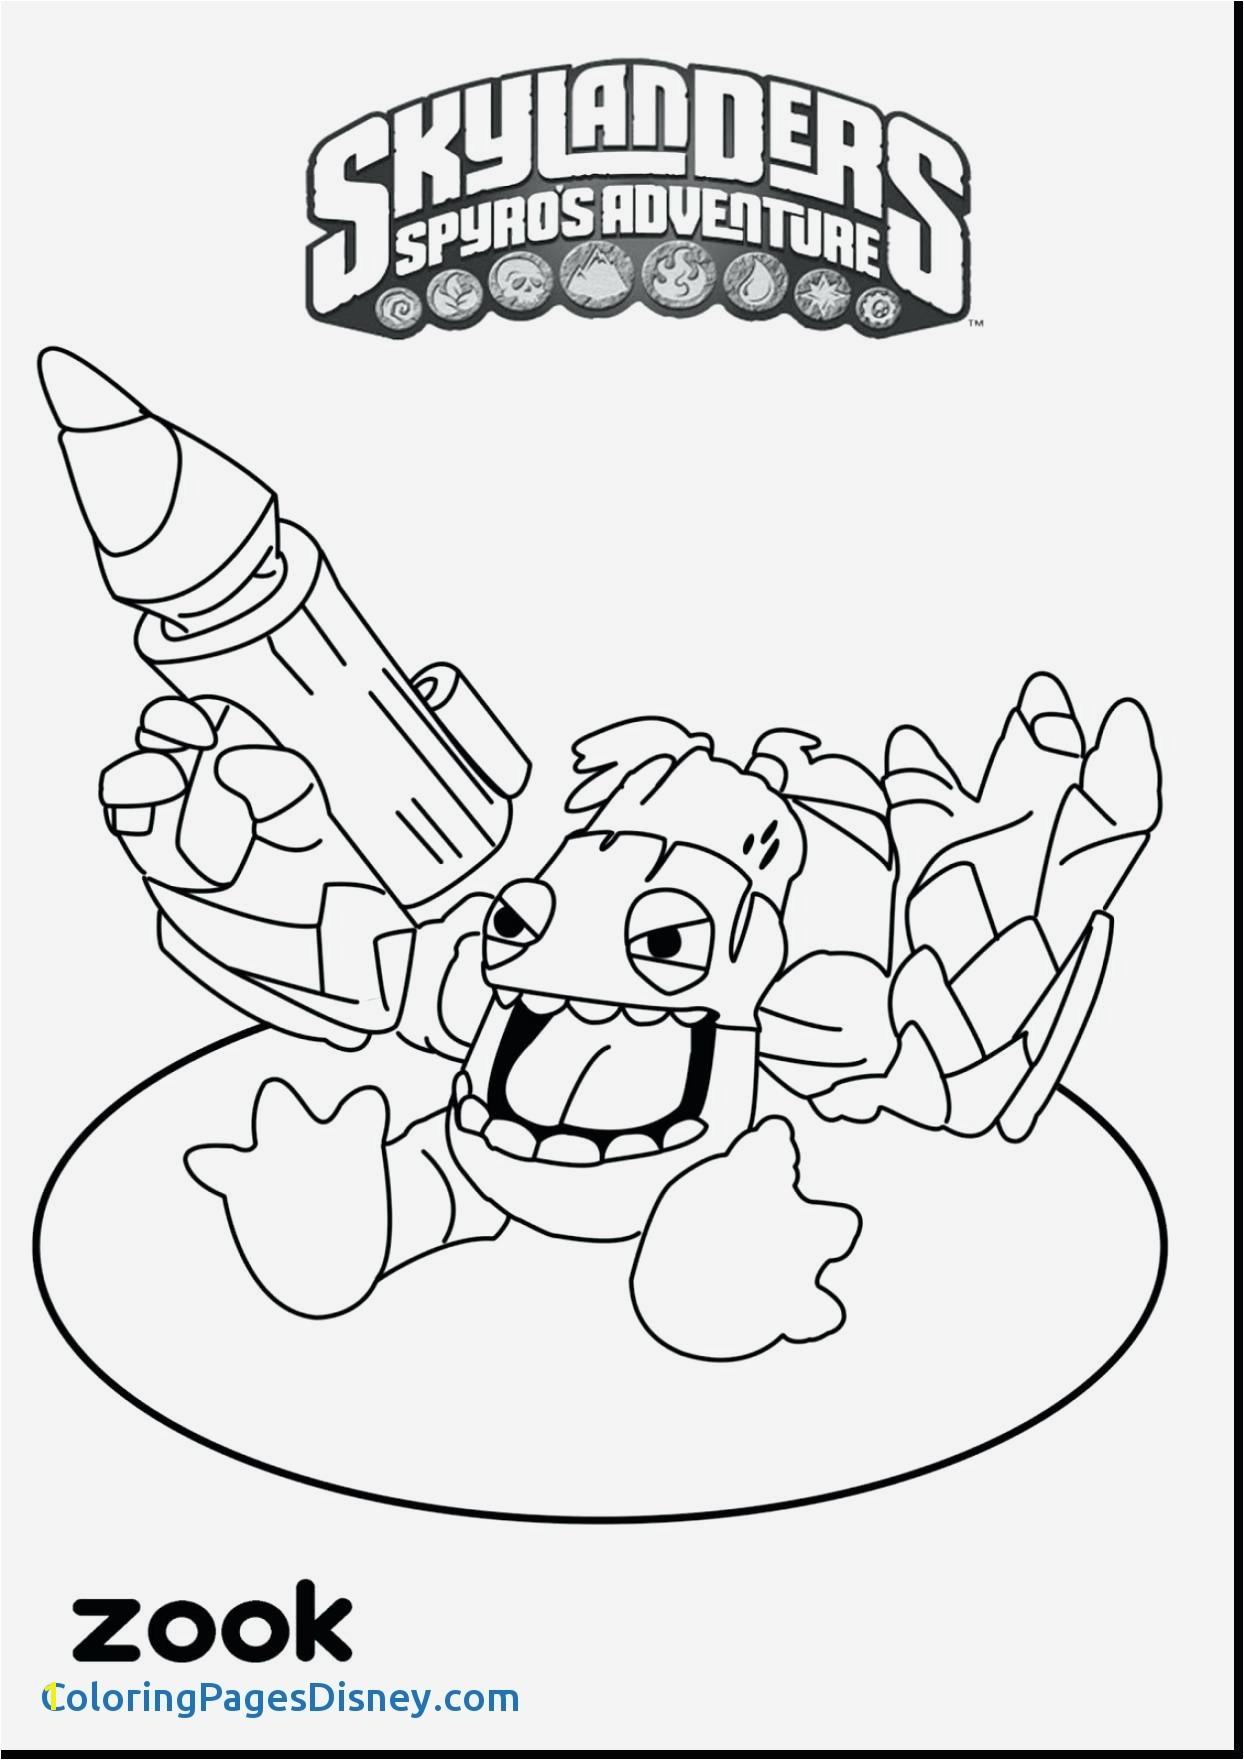 Camo Skylanders Coloring Pages Pluto Coloring Pages Luxury Awesome Coloring Skylander Giants Ruva